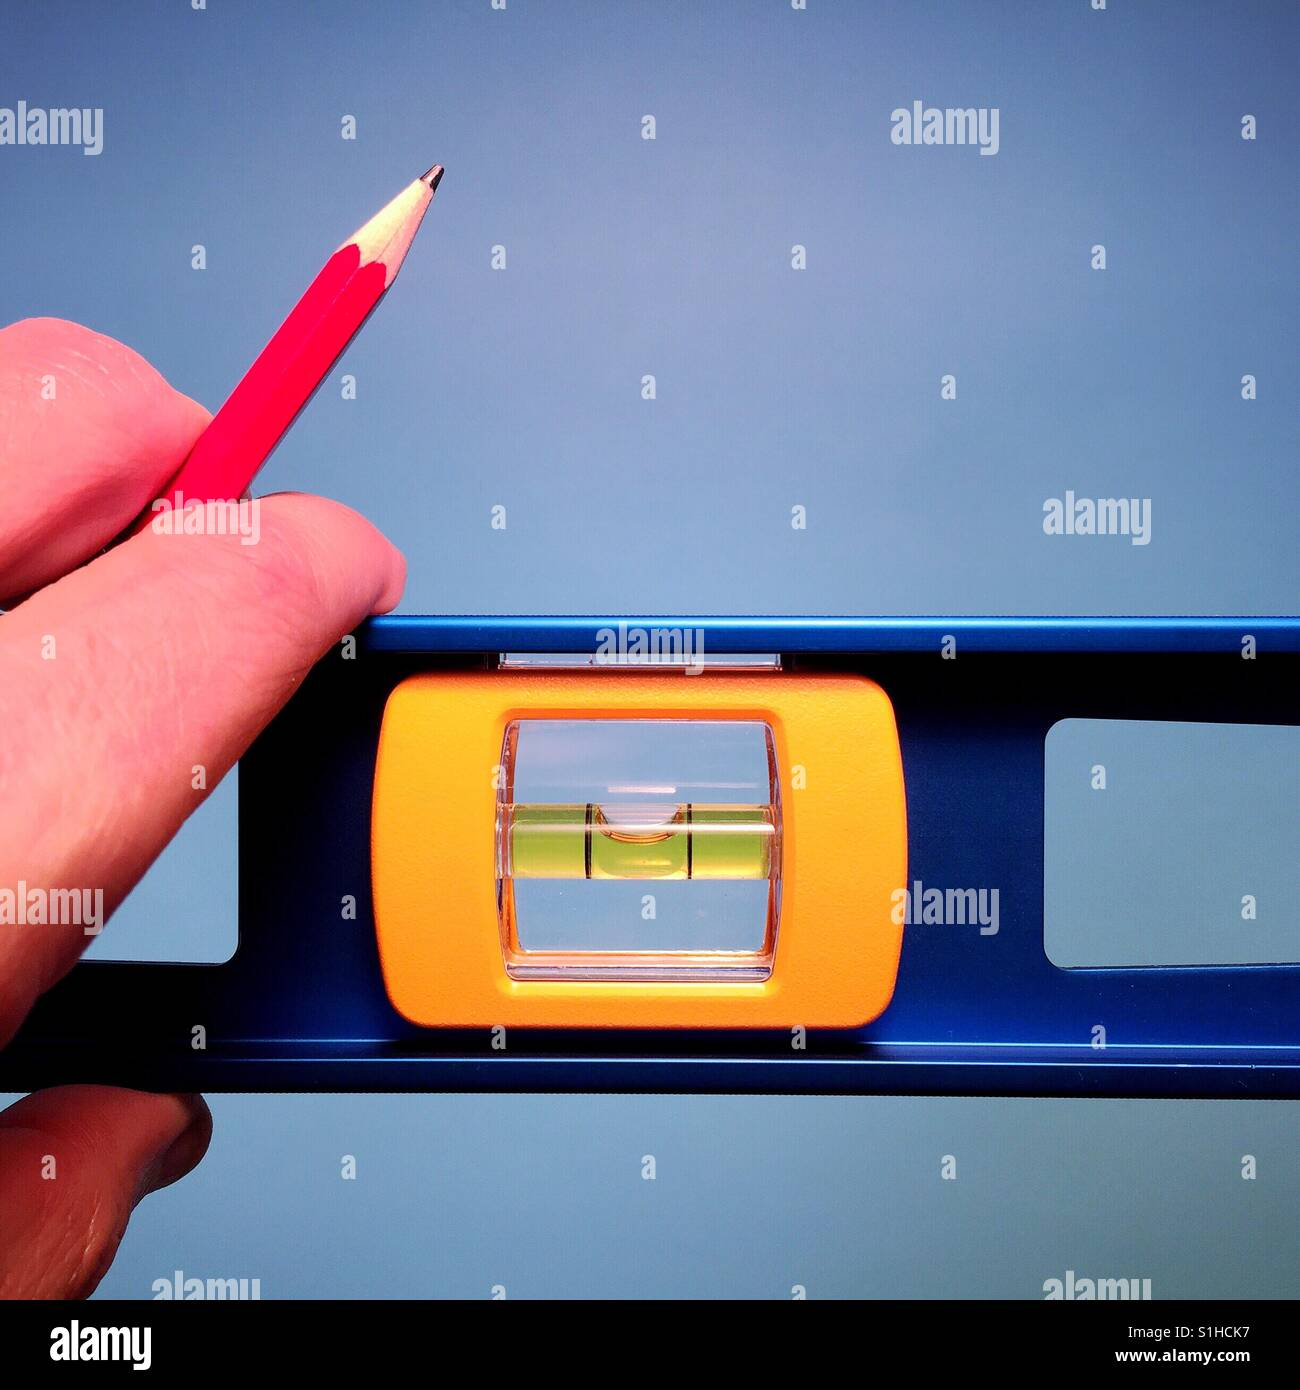 A close up shot of a man holding a carpenter's level and a red pencil against a blue background - Stock Image